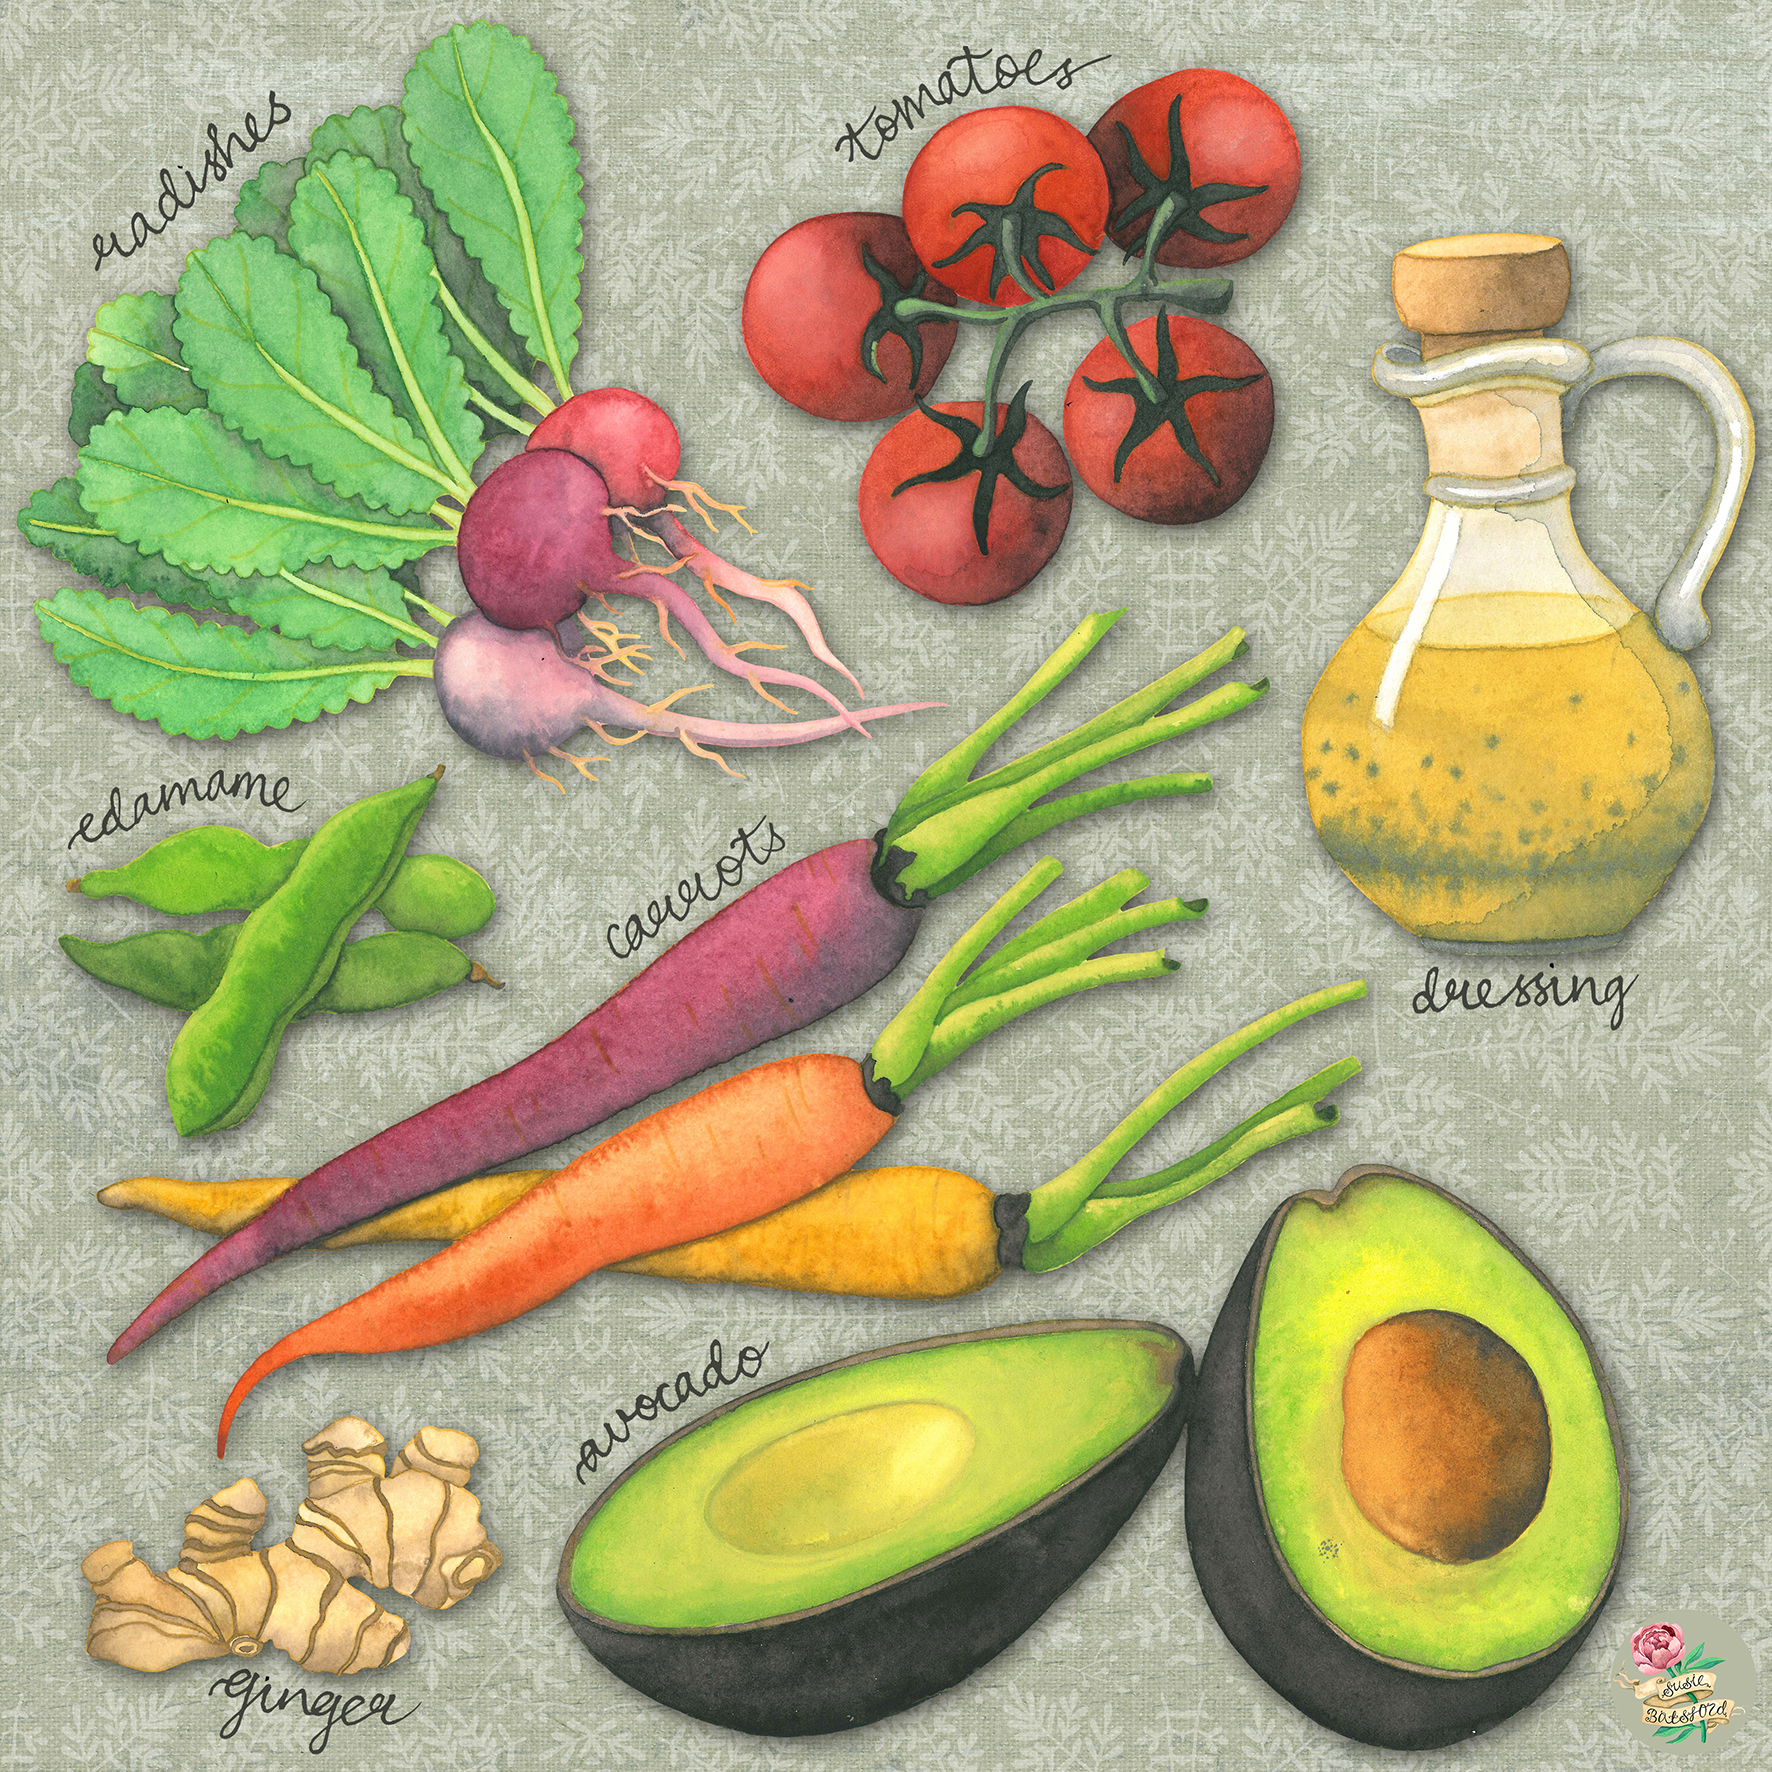 Eat The Rainbow Illustrated Food Watercolour Painting by Susie Batsford